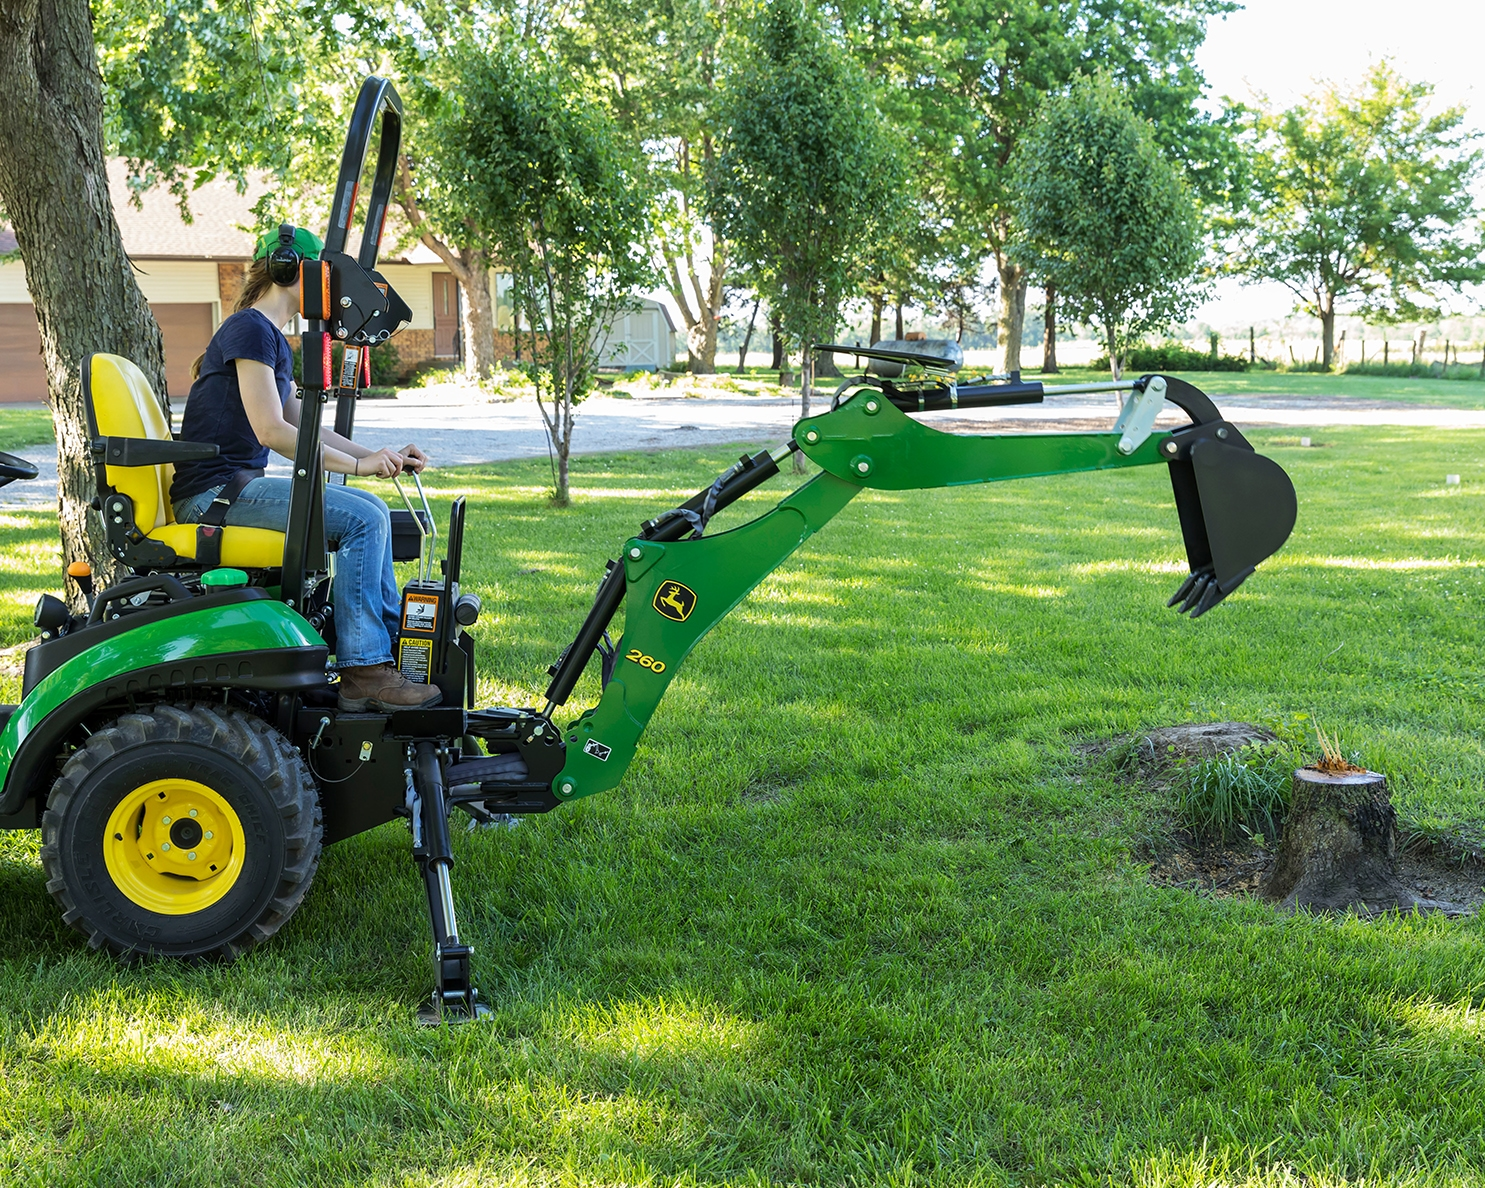 John_Deere_Backhoe_Tree_Stump